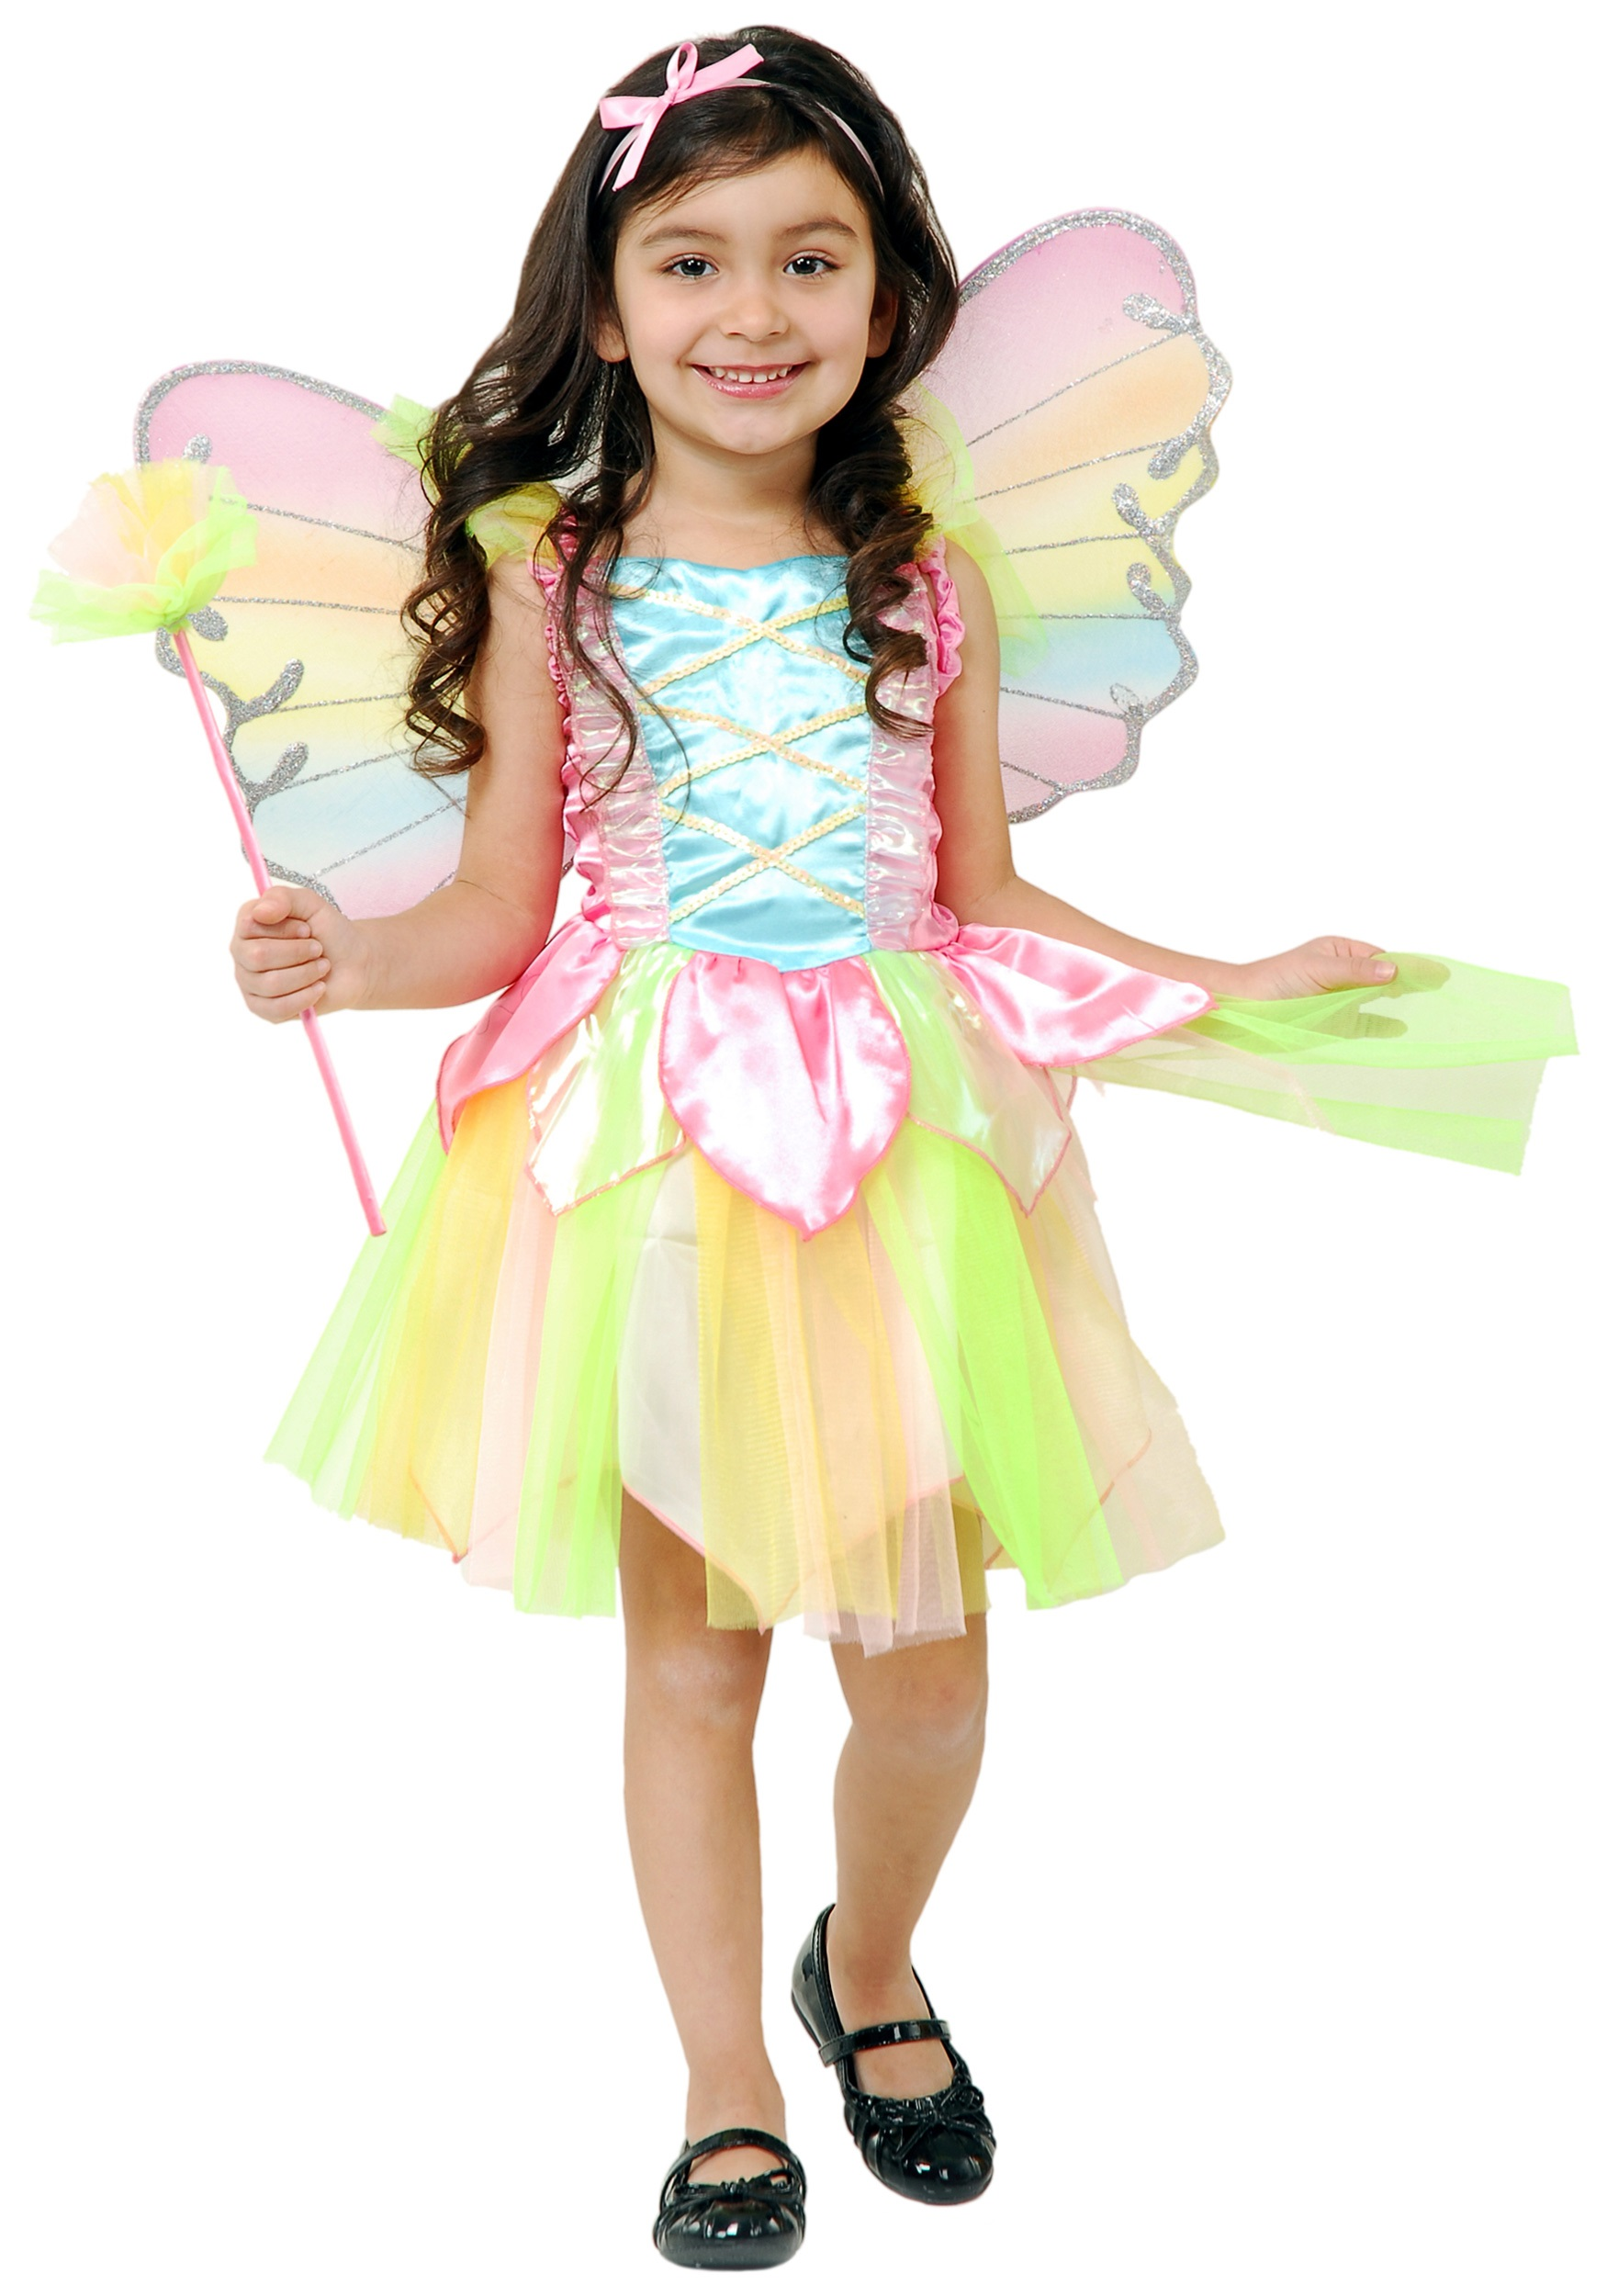 Toddler Rainbow Fairy Costume  sc 1 st  Halloween Costumes & Toddler Rainbow Fairy Costume - Halloween Costume Ideas 2018